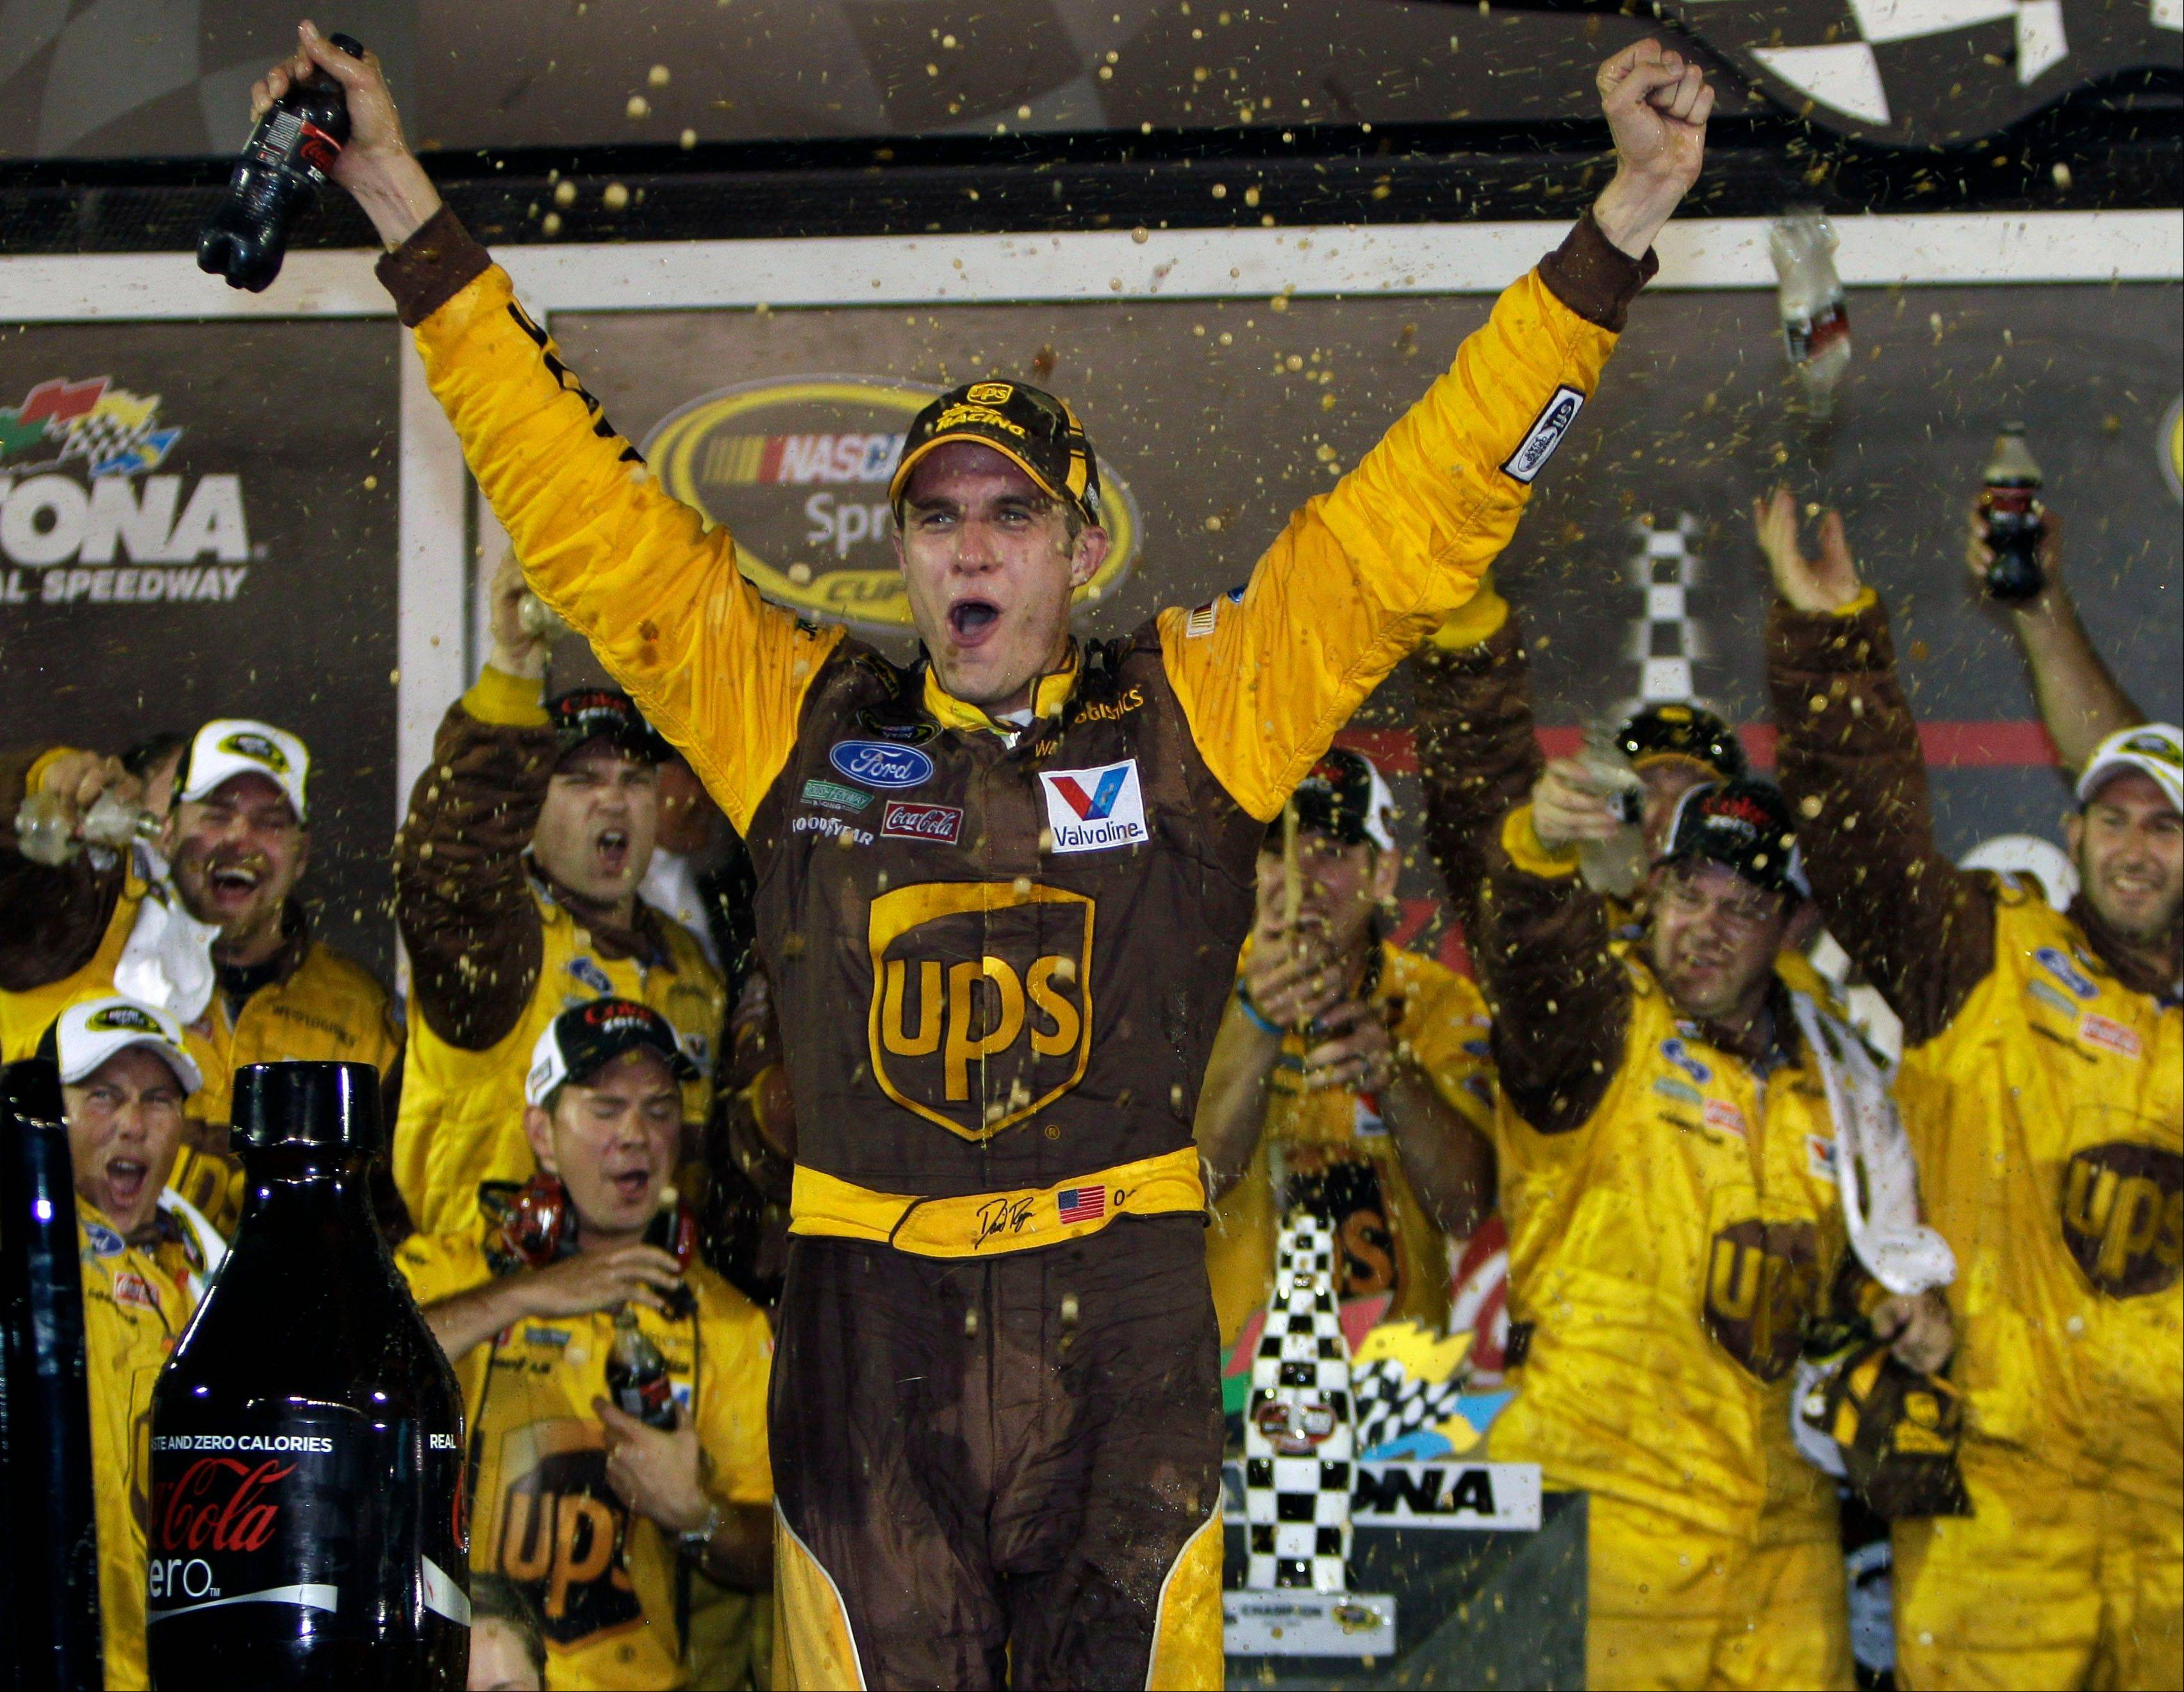 David Ragan celebrates after winning the NASCAR Coke Zero 400 in Daytona Beach, Fla., on Saturday.